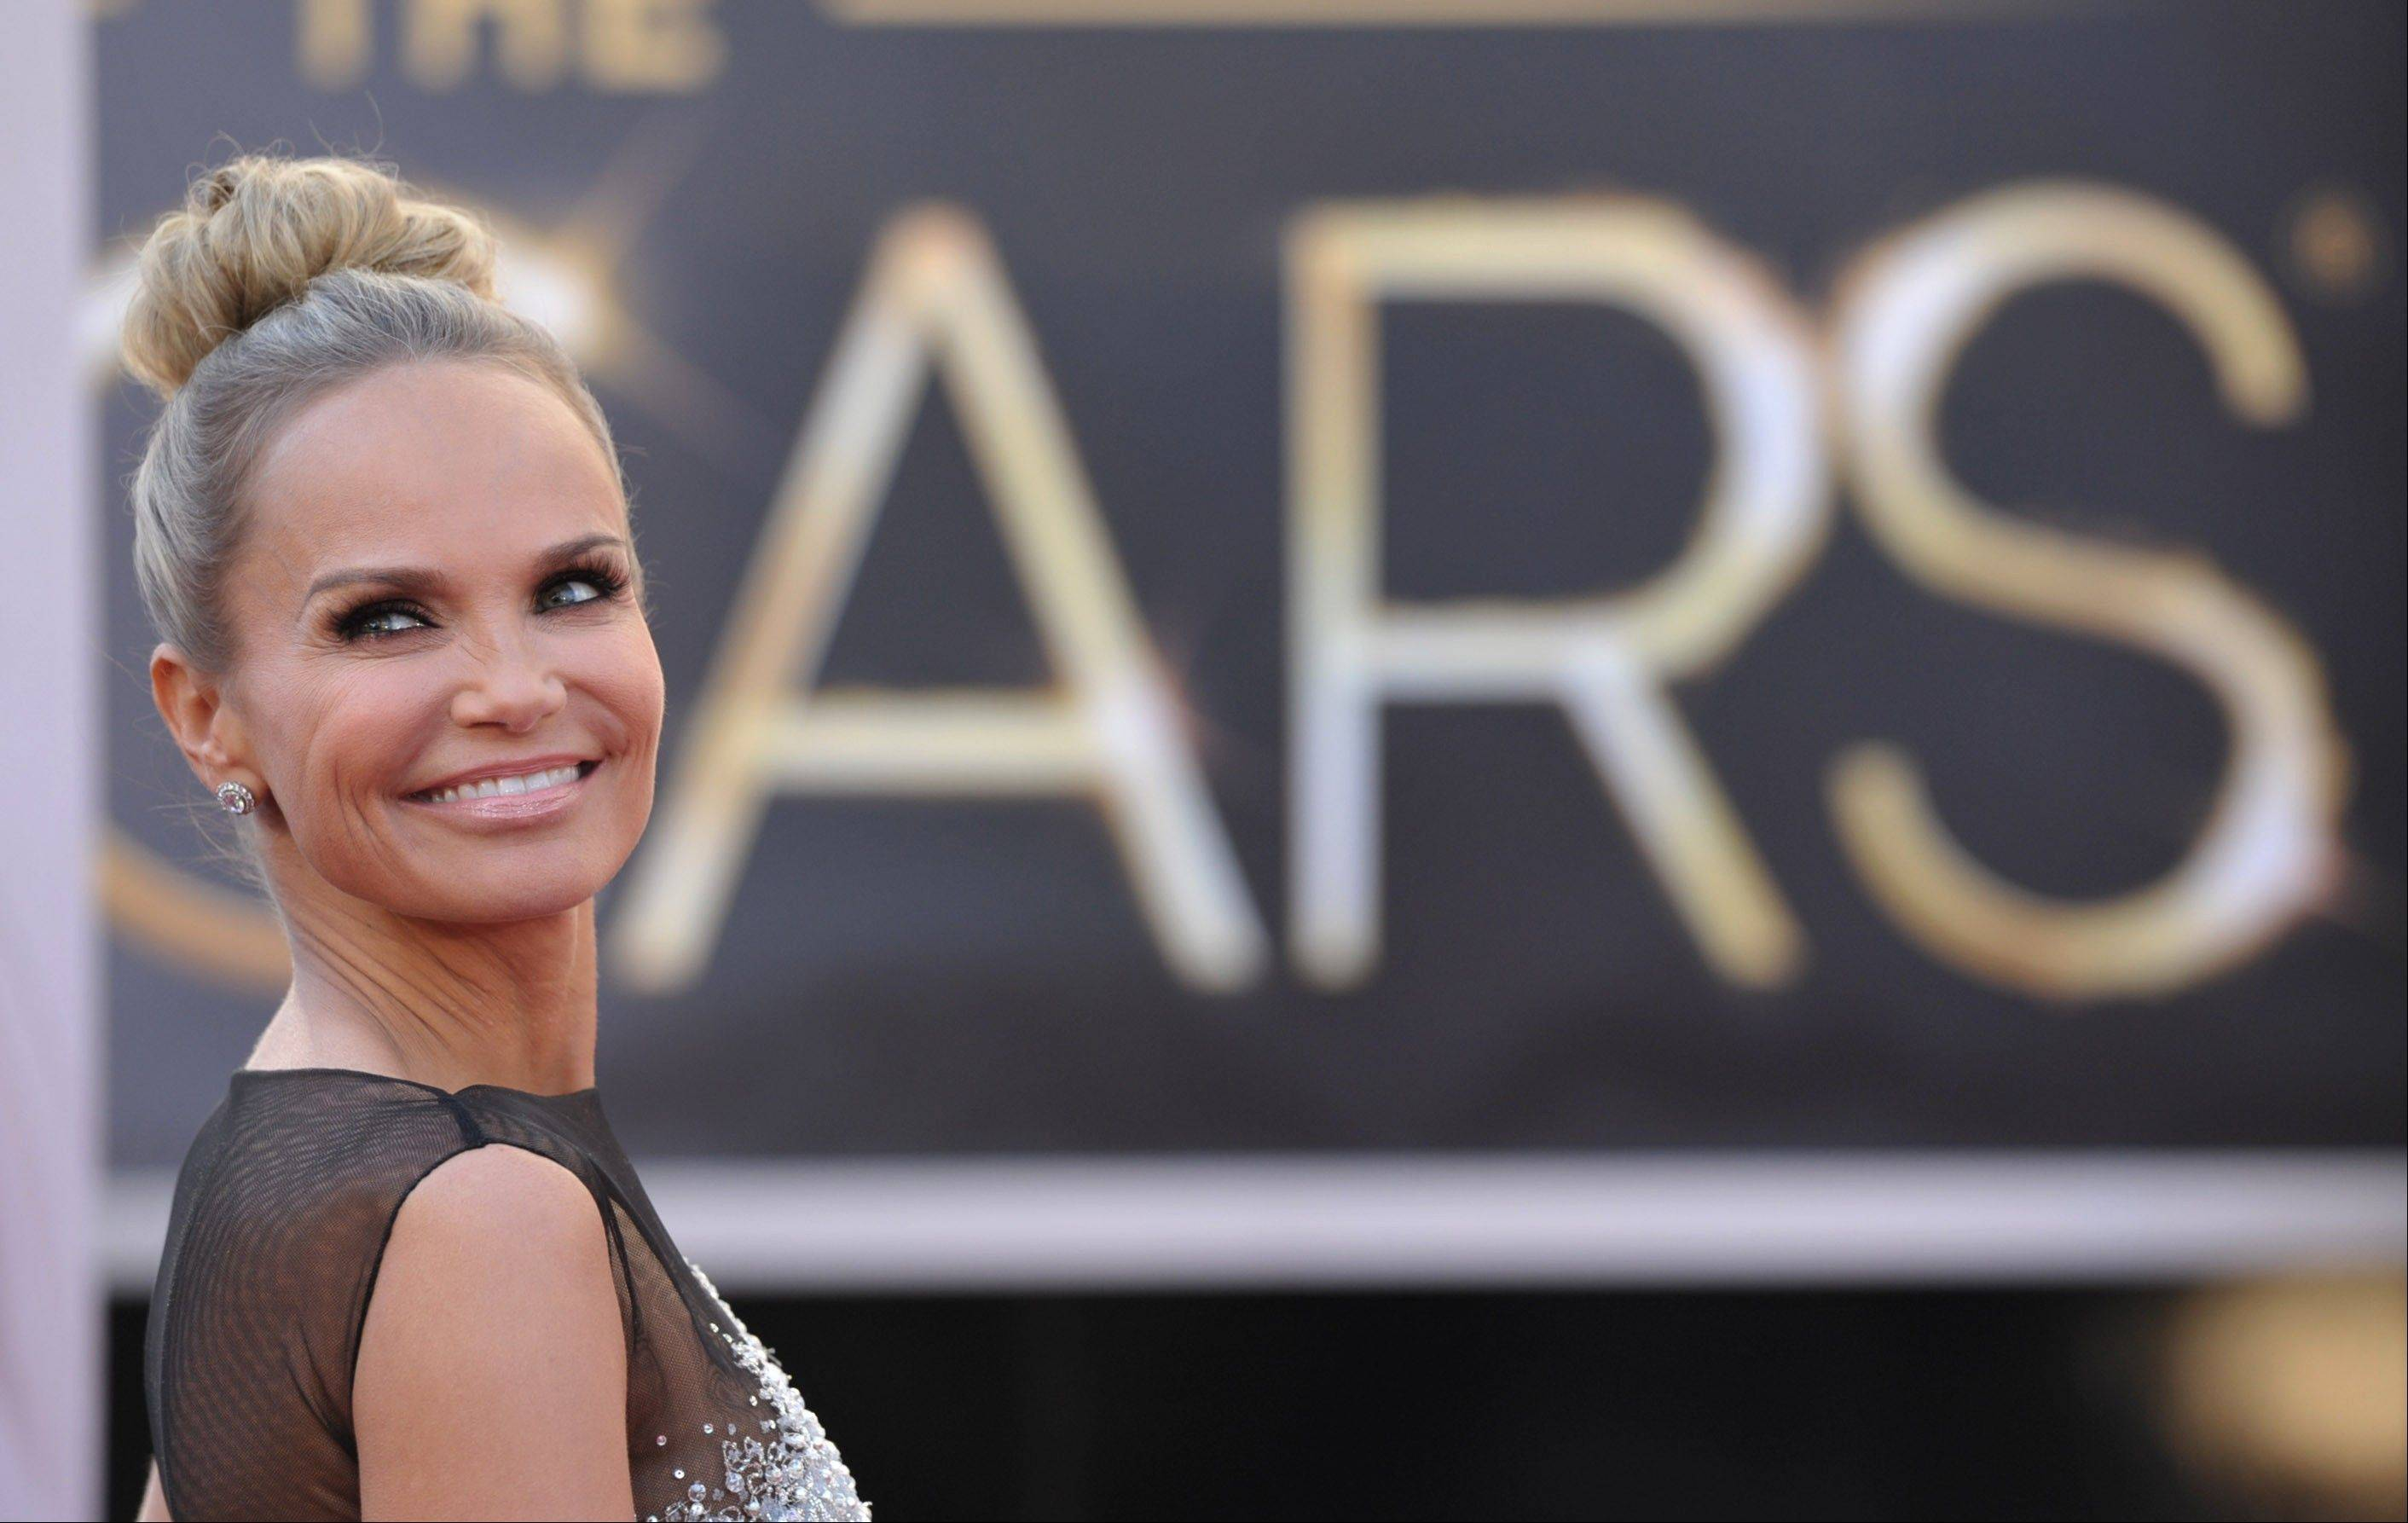 Actress Kristin Chenoweth arrives at the 85th Academy Awards at the Dolby Theatre on Sunday in Los Angeles.